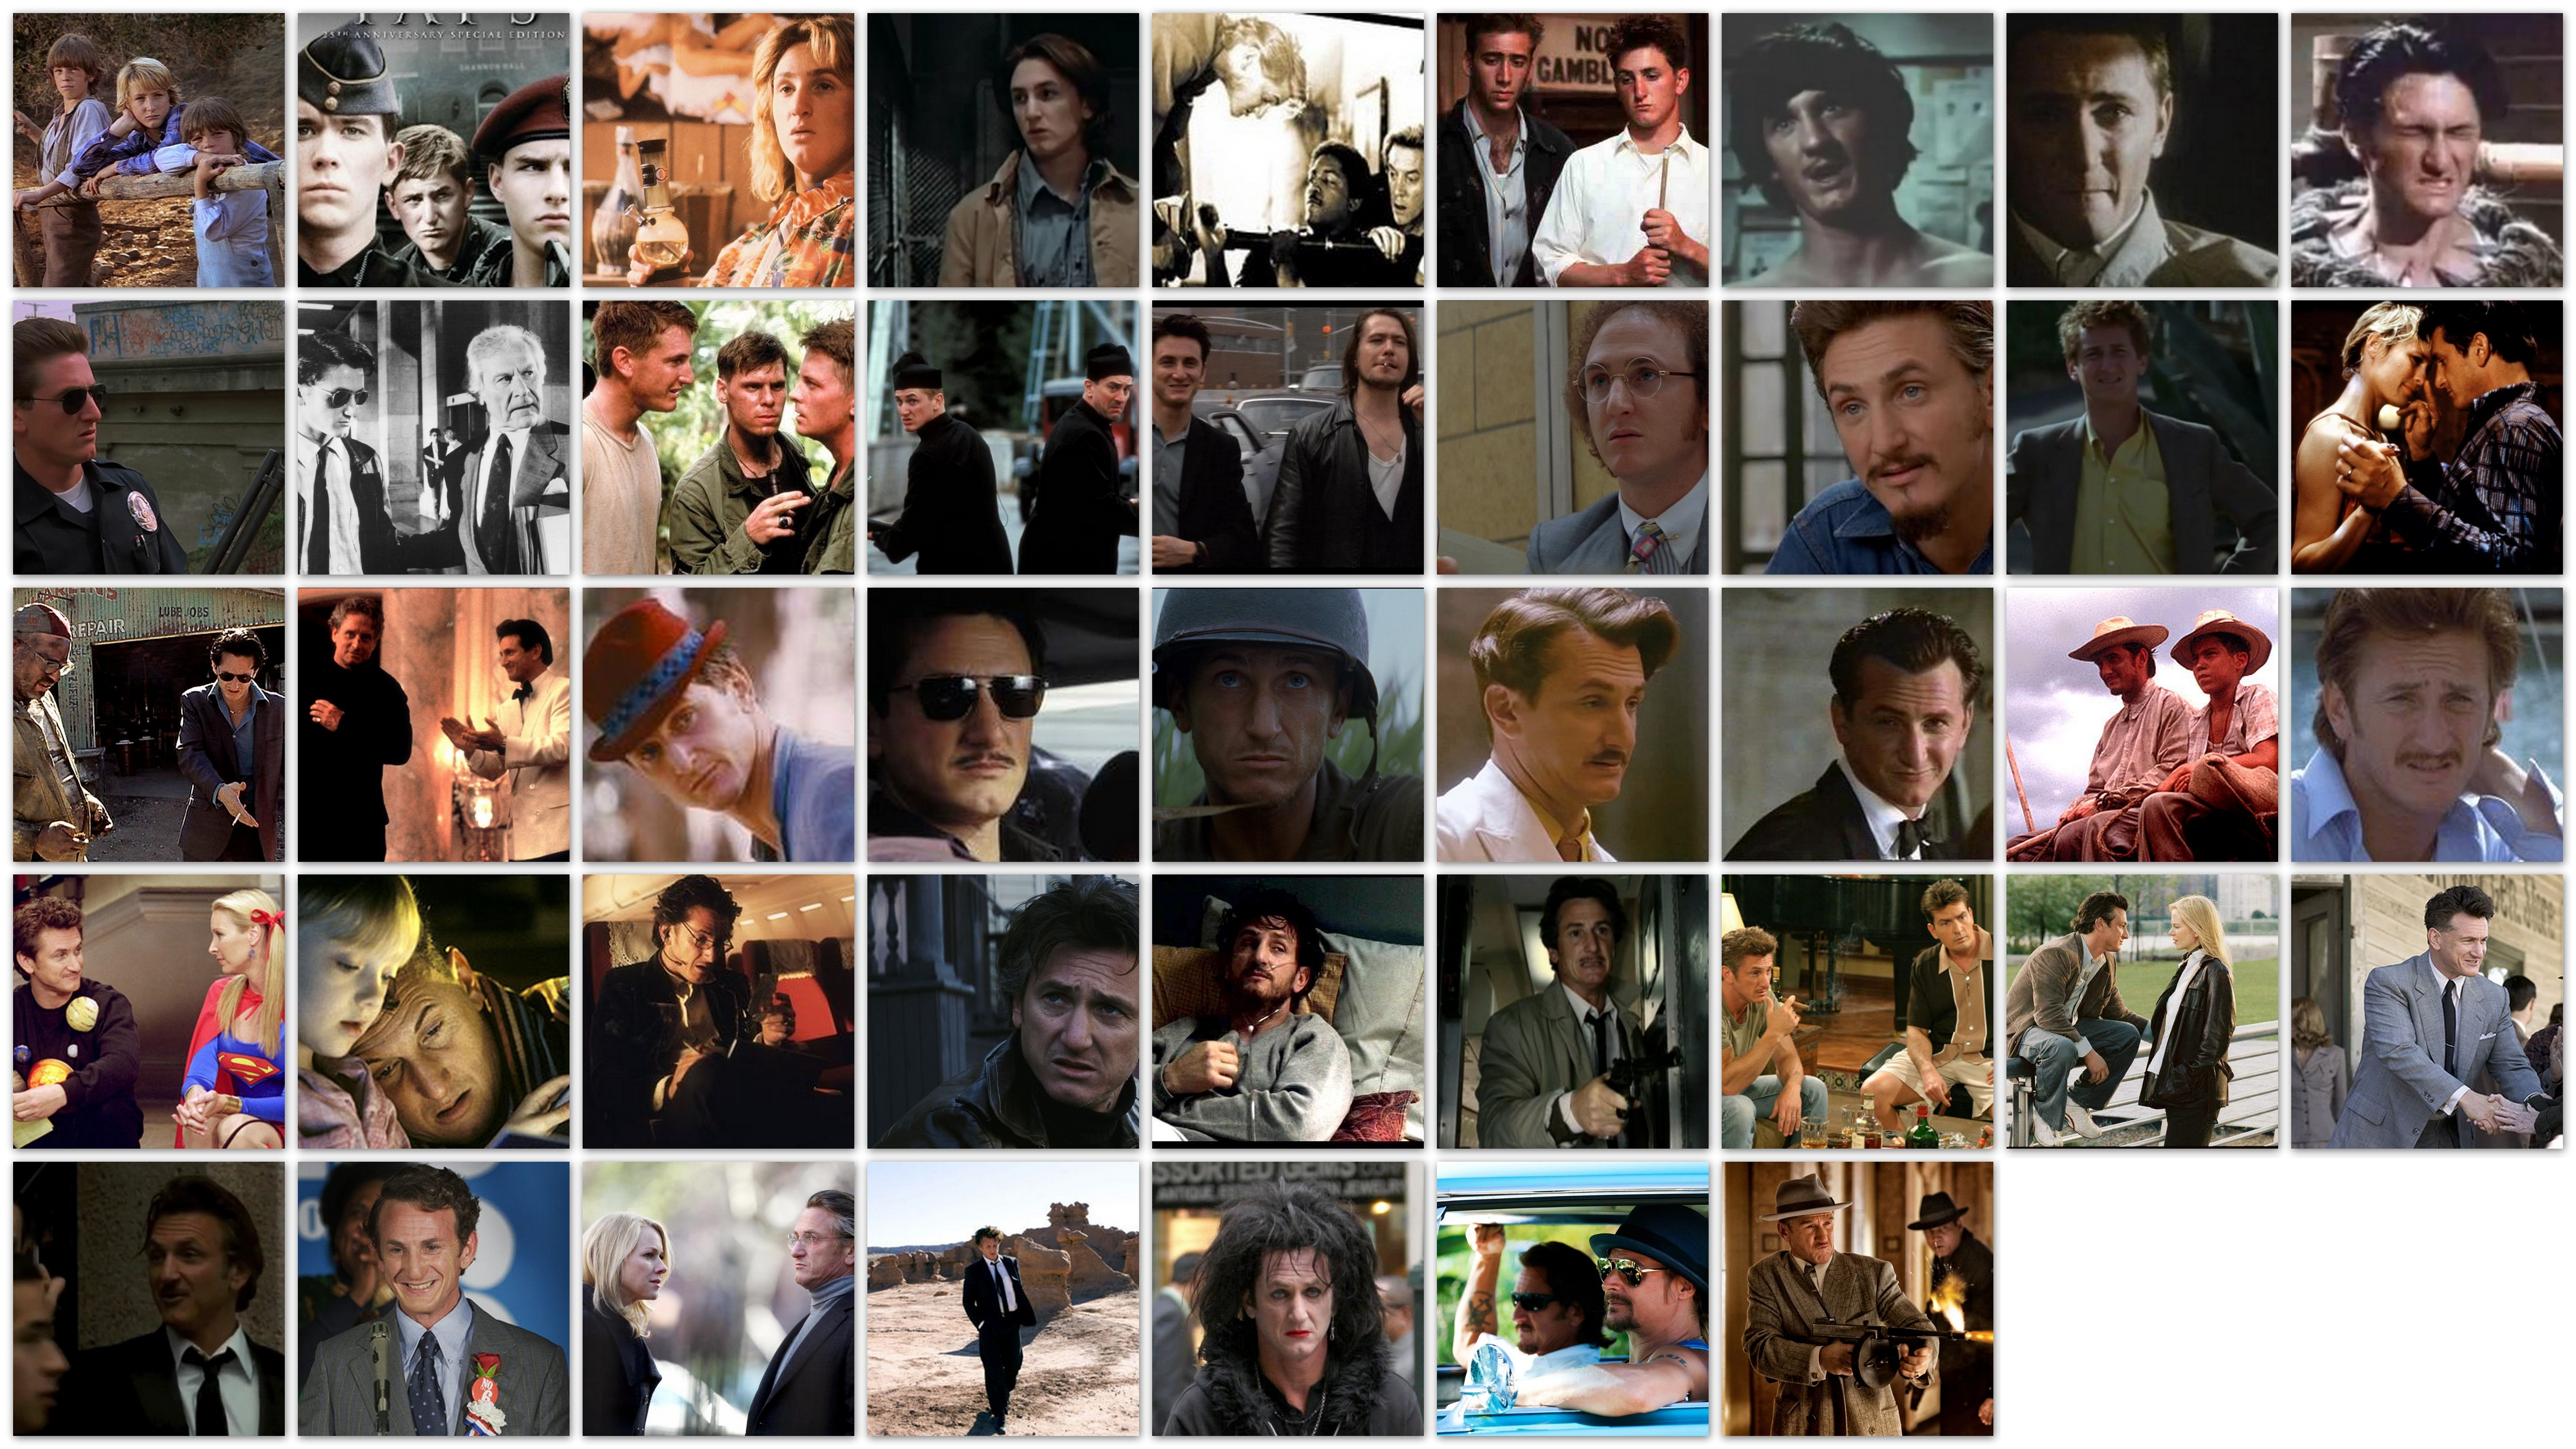 Overview of the roles and movies of Sean Penn